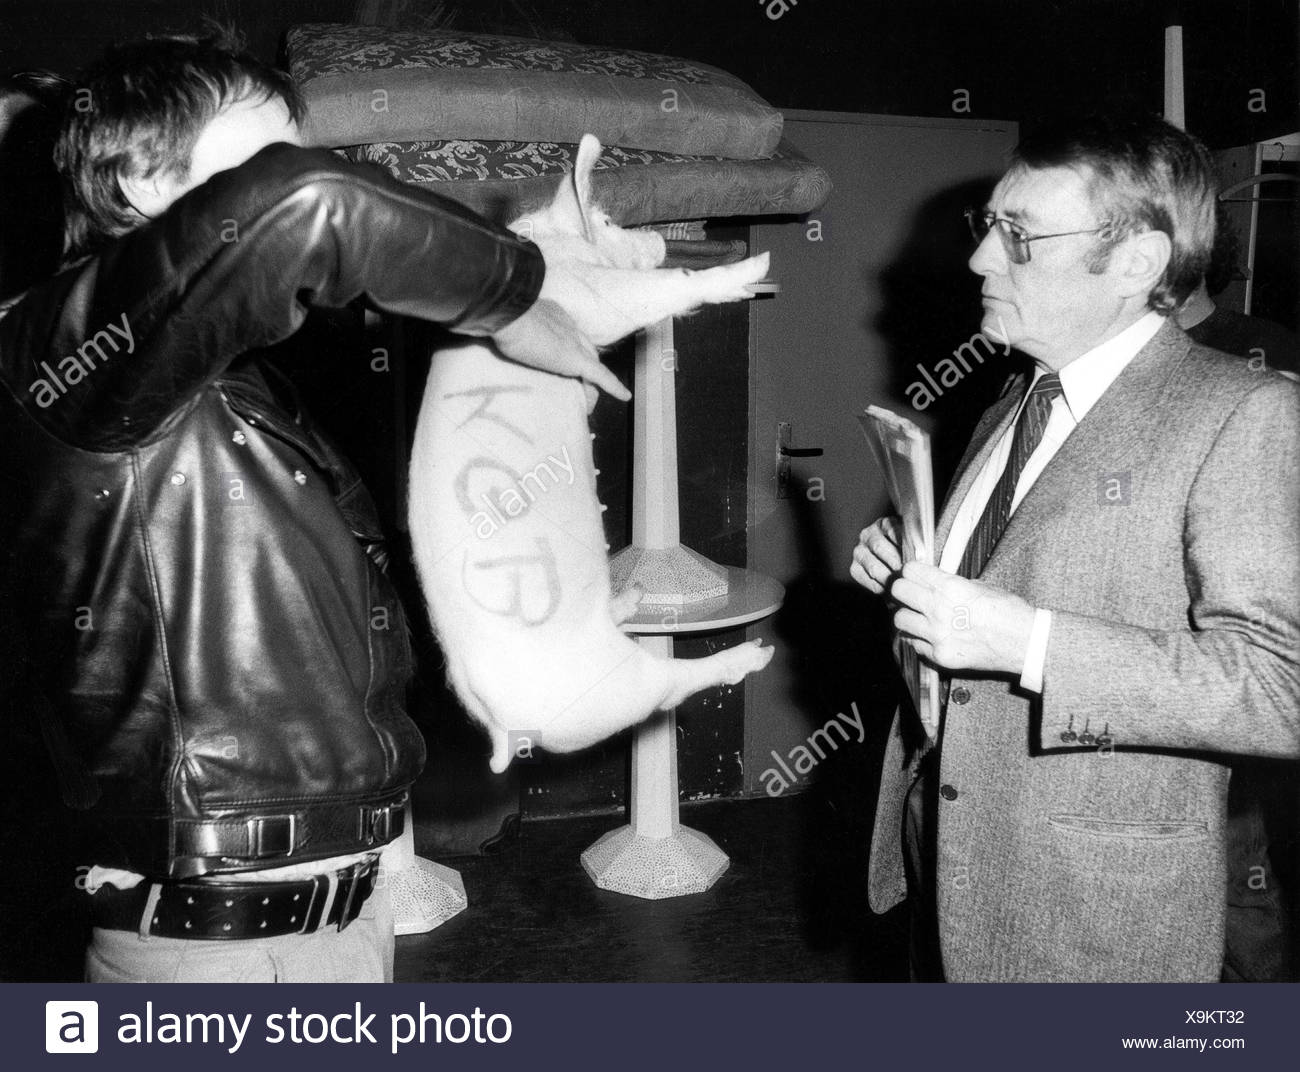 Augstein, Rudolf, 5.11.1923 - 7.11.2002, German journalist, editor of 'Der Spiegel', presentation, 'Speeches about the own country - Germany', with pig 'KGB Rudi' smuggled into his wardrobe, Munich, 4.11.1984, , Additional-Rights-Clearances-NA - Stock Image